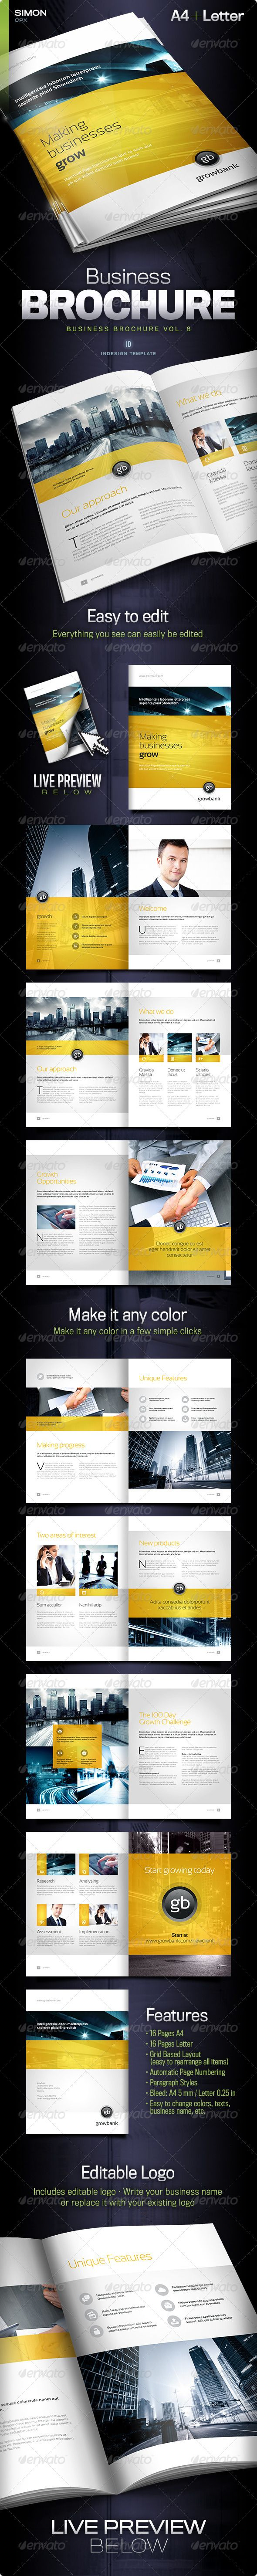 Business Brochure Vol. 8 - Corporate Brochures - the overall design should be NO more than three colours. Corporate colours. Nothing fussy. text/Copy also extremely corporate. High end, technical, straight forward. (Copy on website good for this product - it's very techy :) Fantastic but possibly maybe needing just a slight adjustment for weddings and portraits!! :D